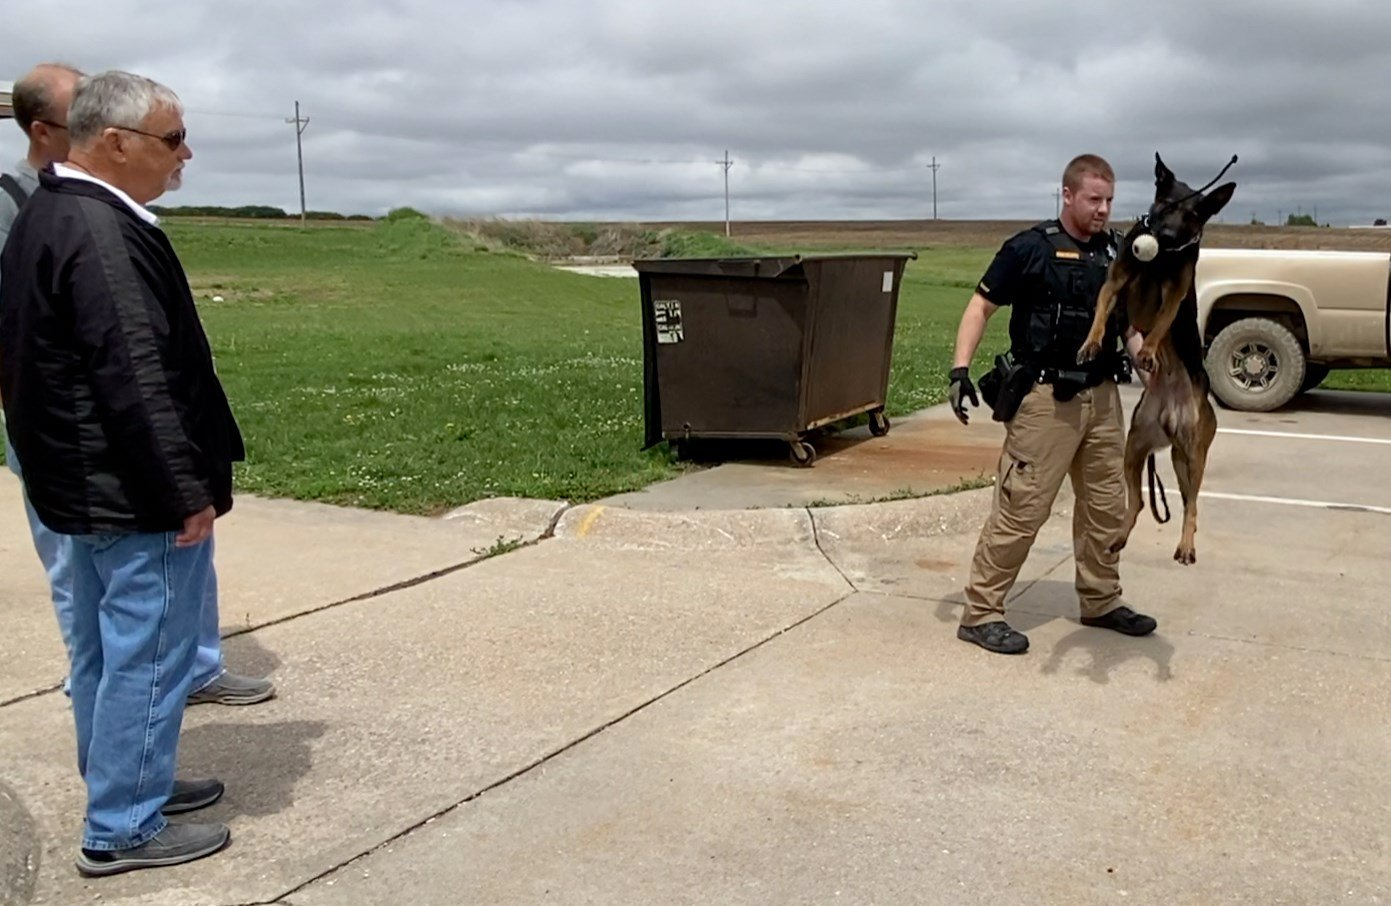 Narcotics enforcement boosted by  'world class' K9 in Richardson County